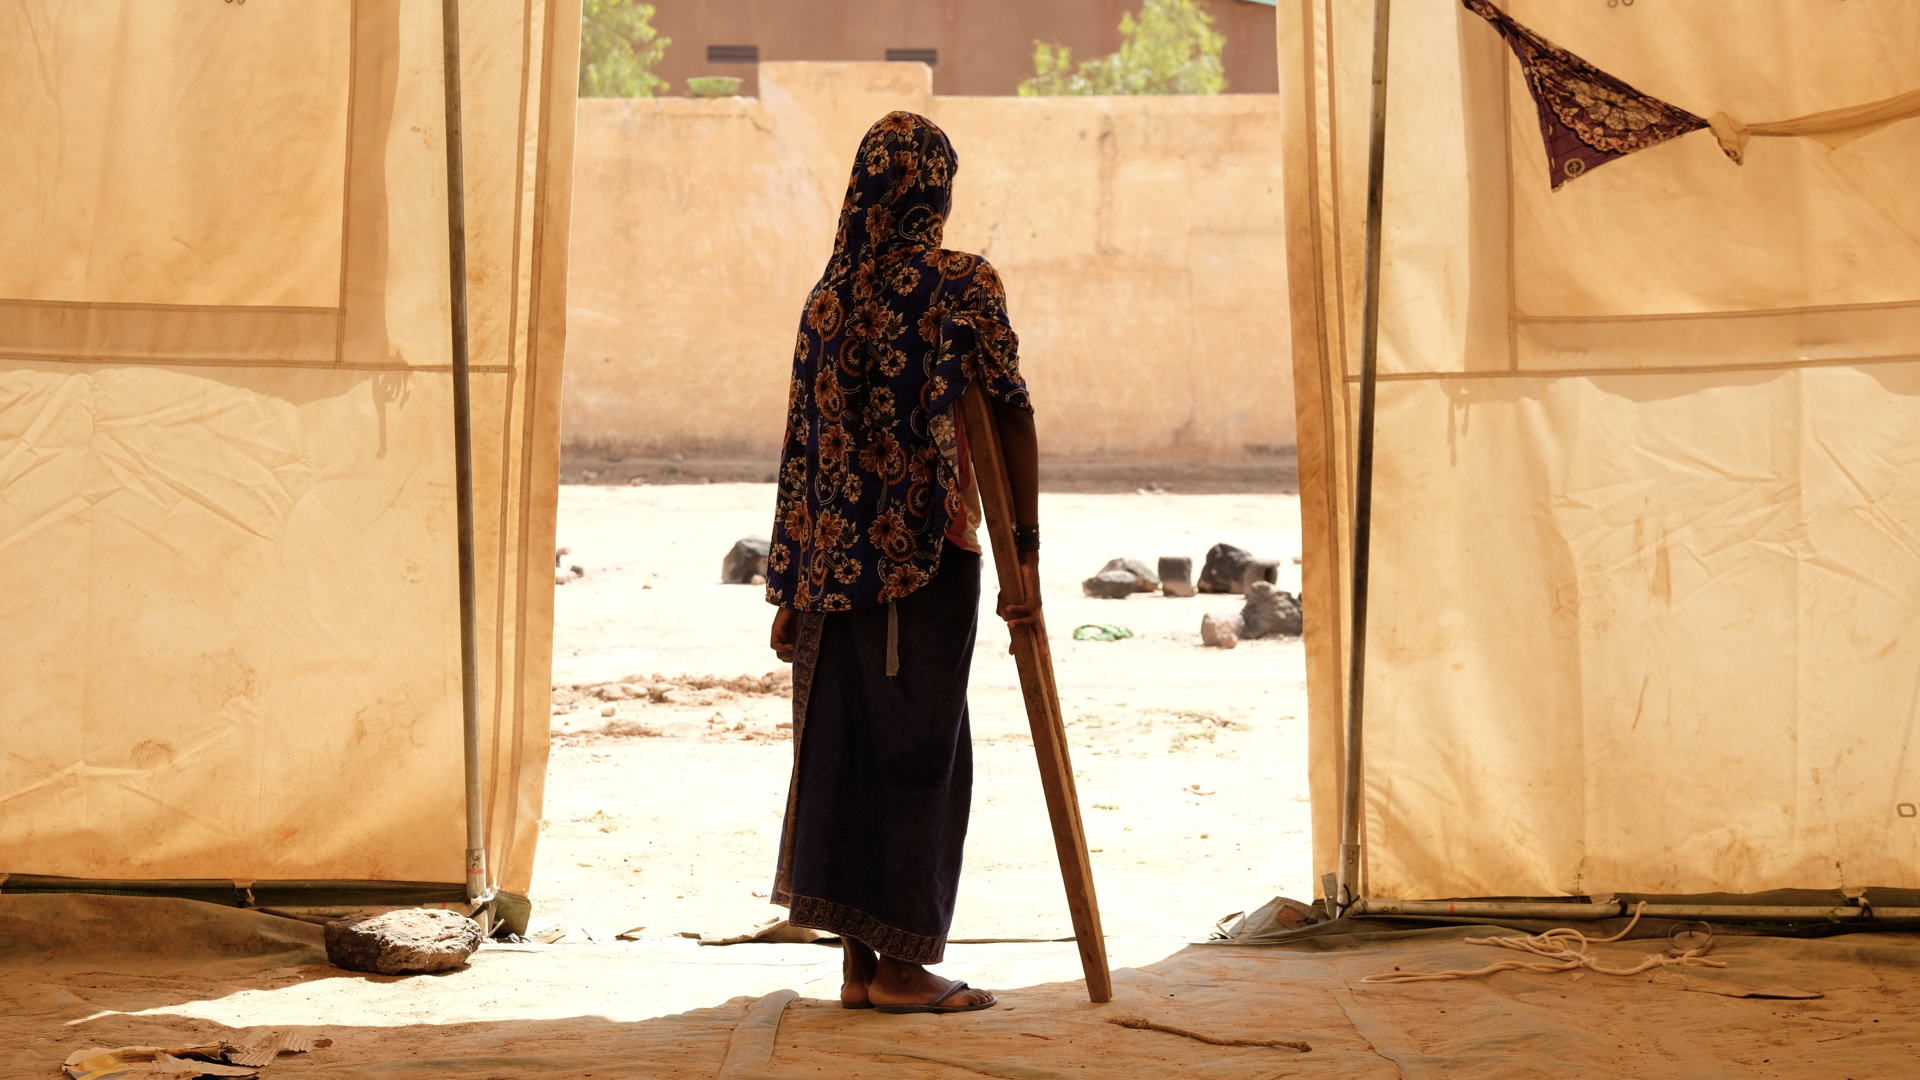 Awa stands outside the door of the tent of a temporary school in a camp outside of Mopti. Her mother was killed in an attack on her village and she was shot in the leg. She's recovering in the safety of the camp but says she's still in pain and struggles walking with the crutch her brother made for her.